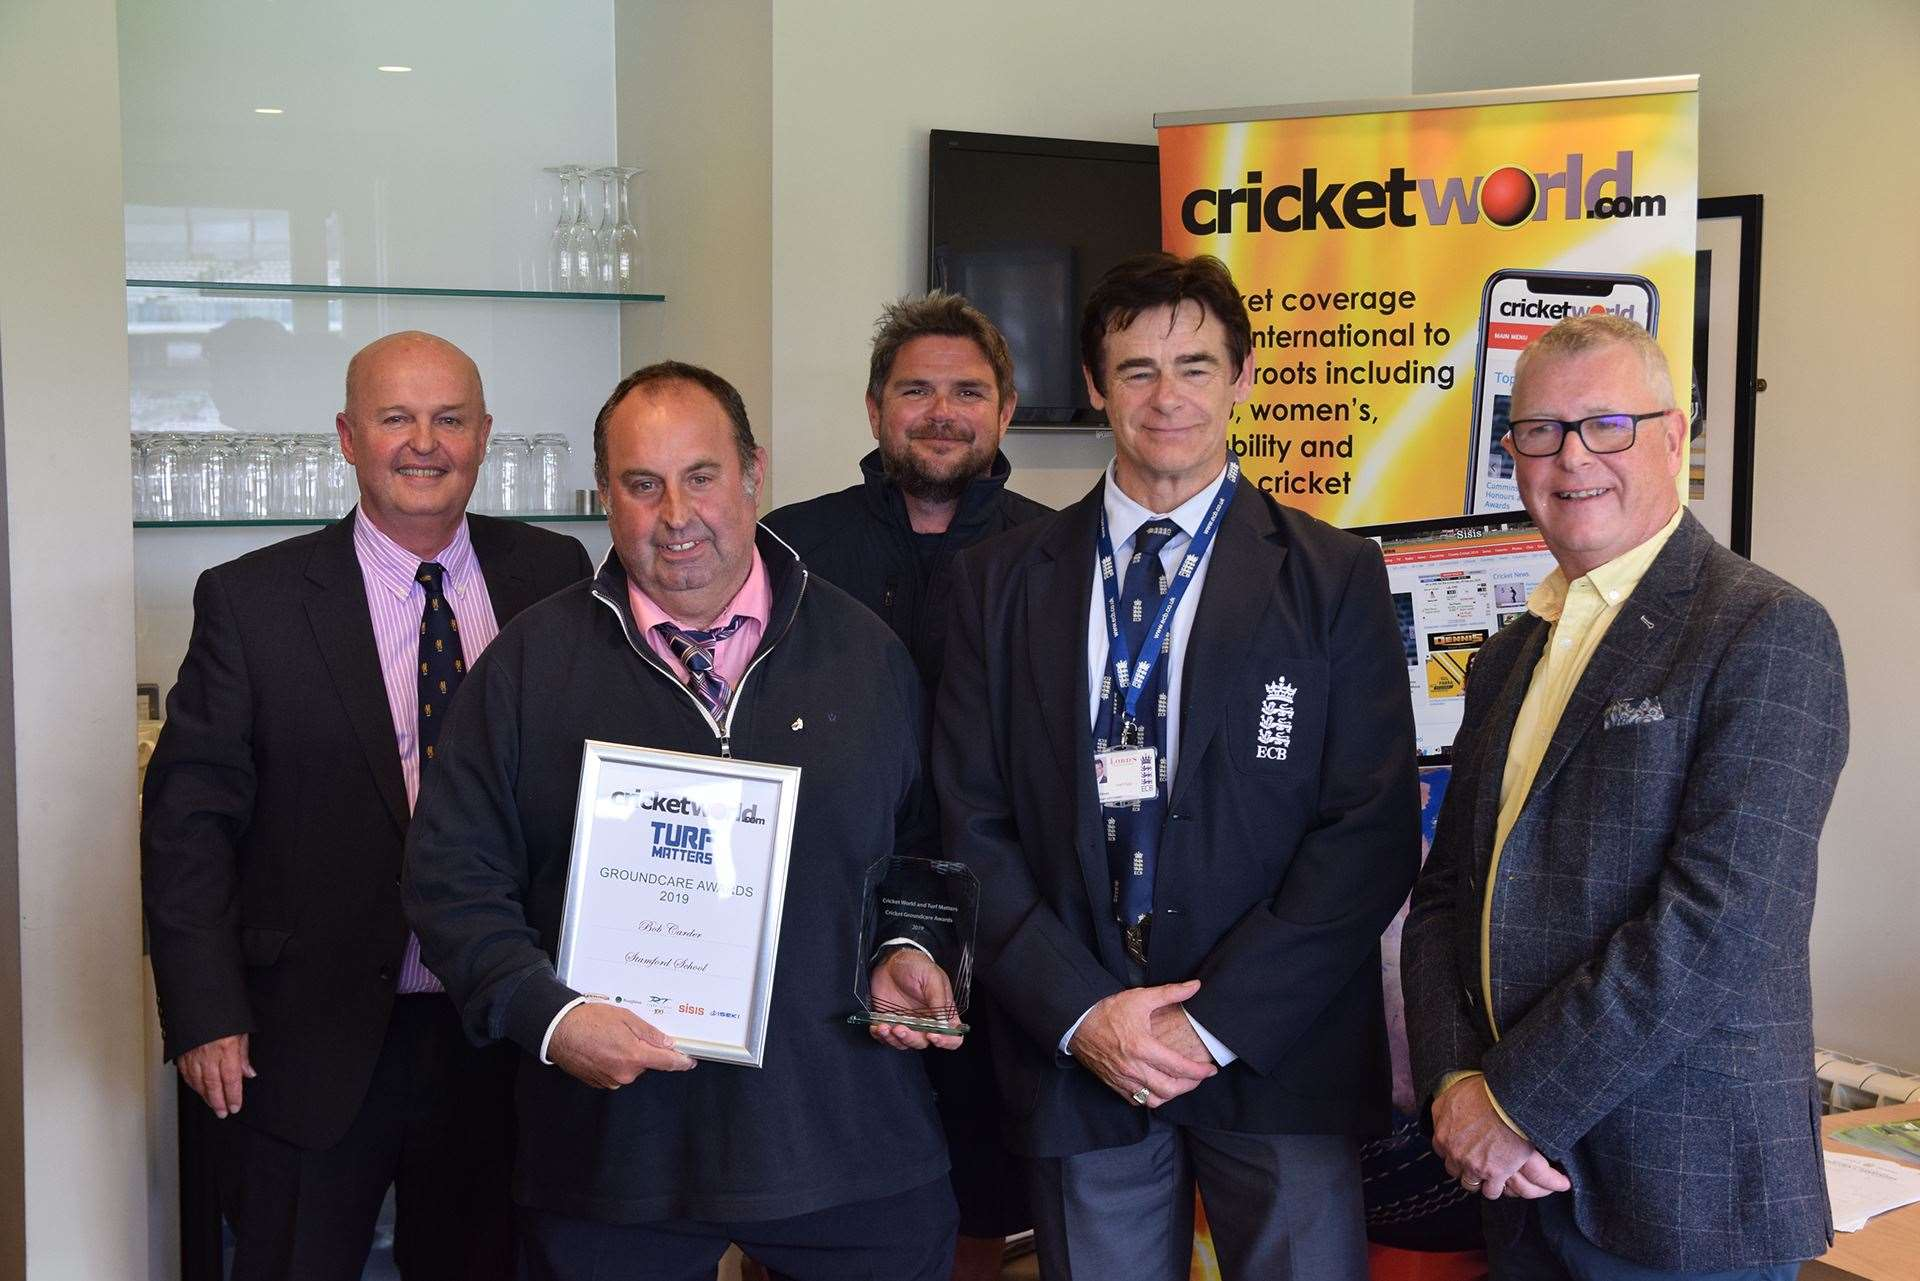 From left to right: Alistair Symondson from Cricket World,Bob Carder, Karl McDermott, MCC head groundsman, Chris Woods, ECB pitch inspector and Scott MacCallum, from Turf Matters